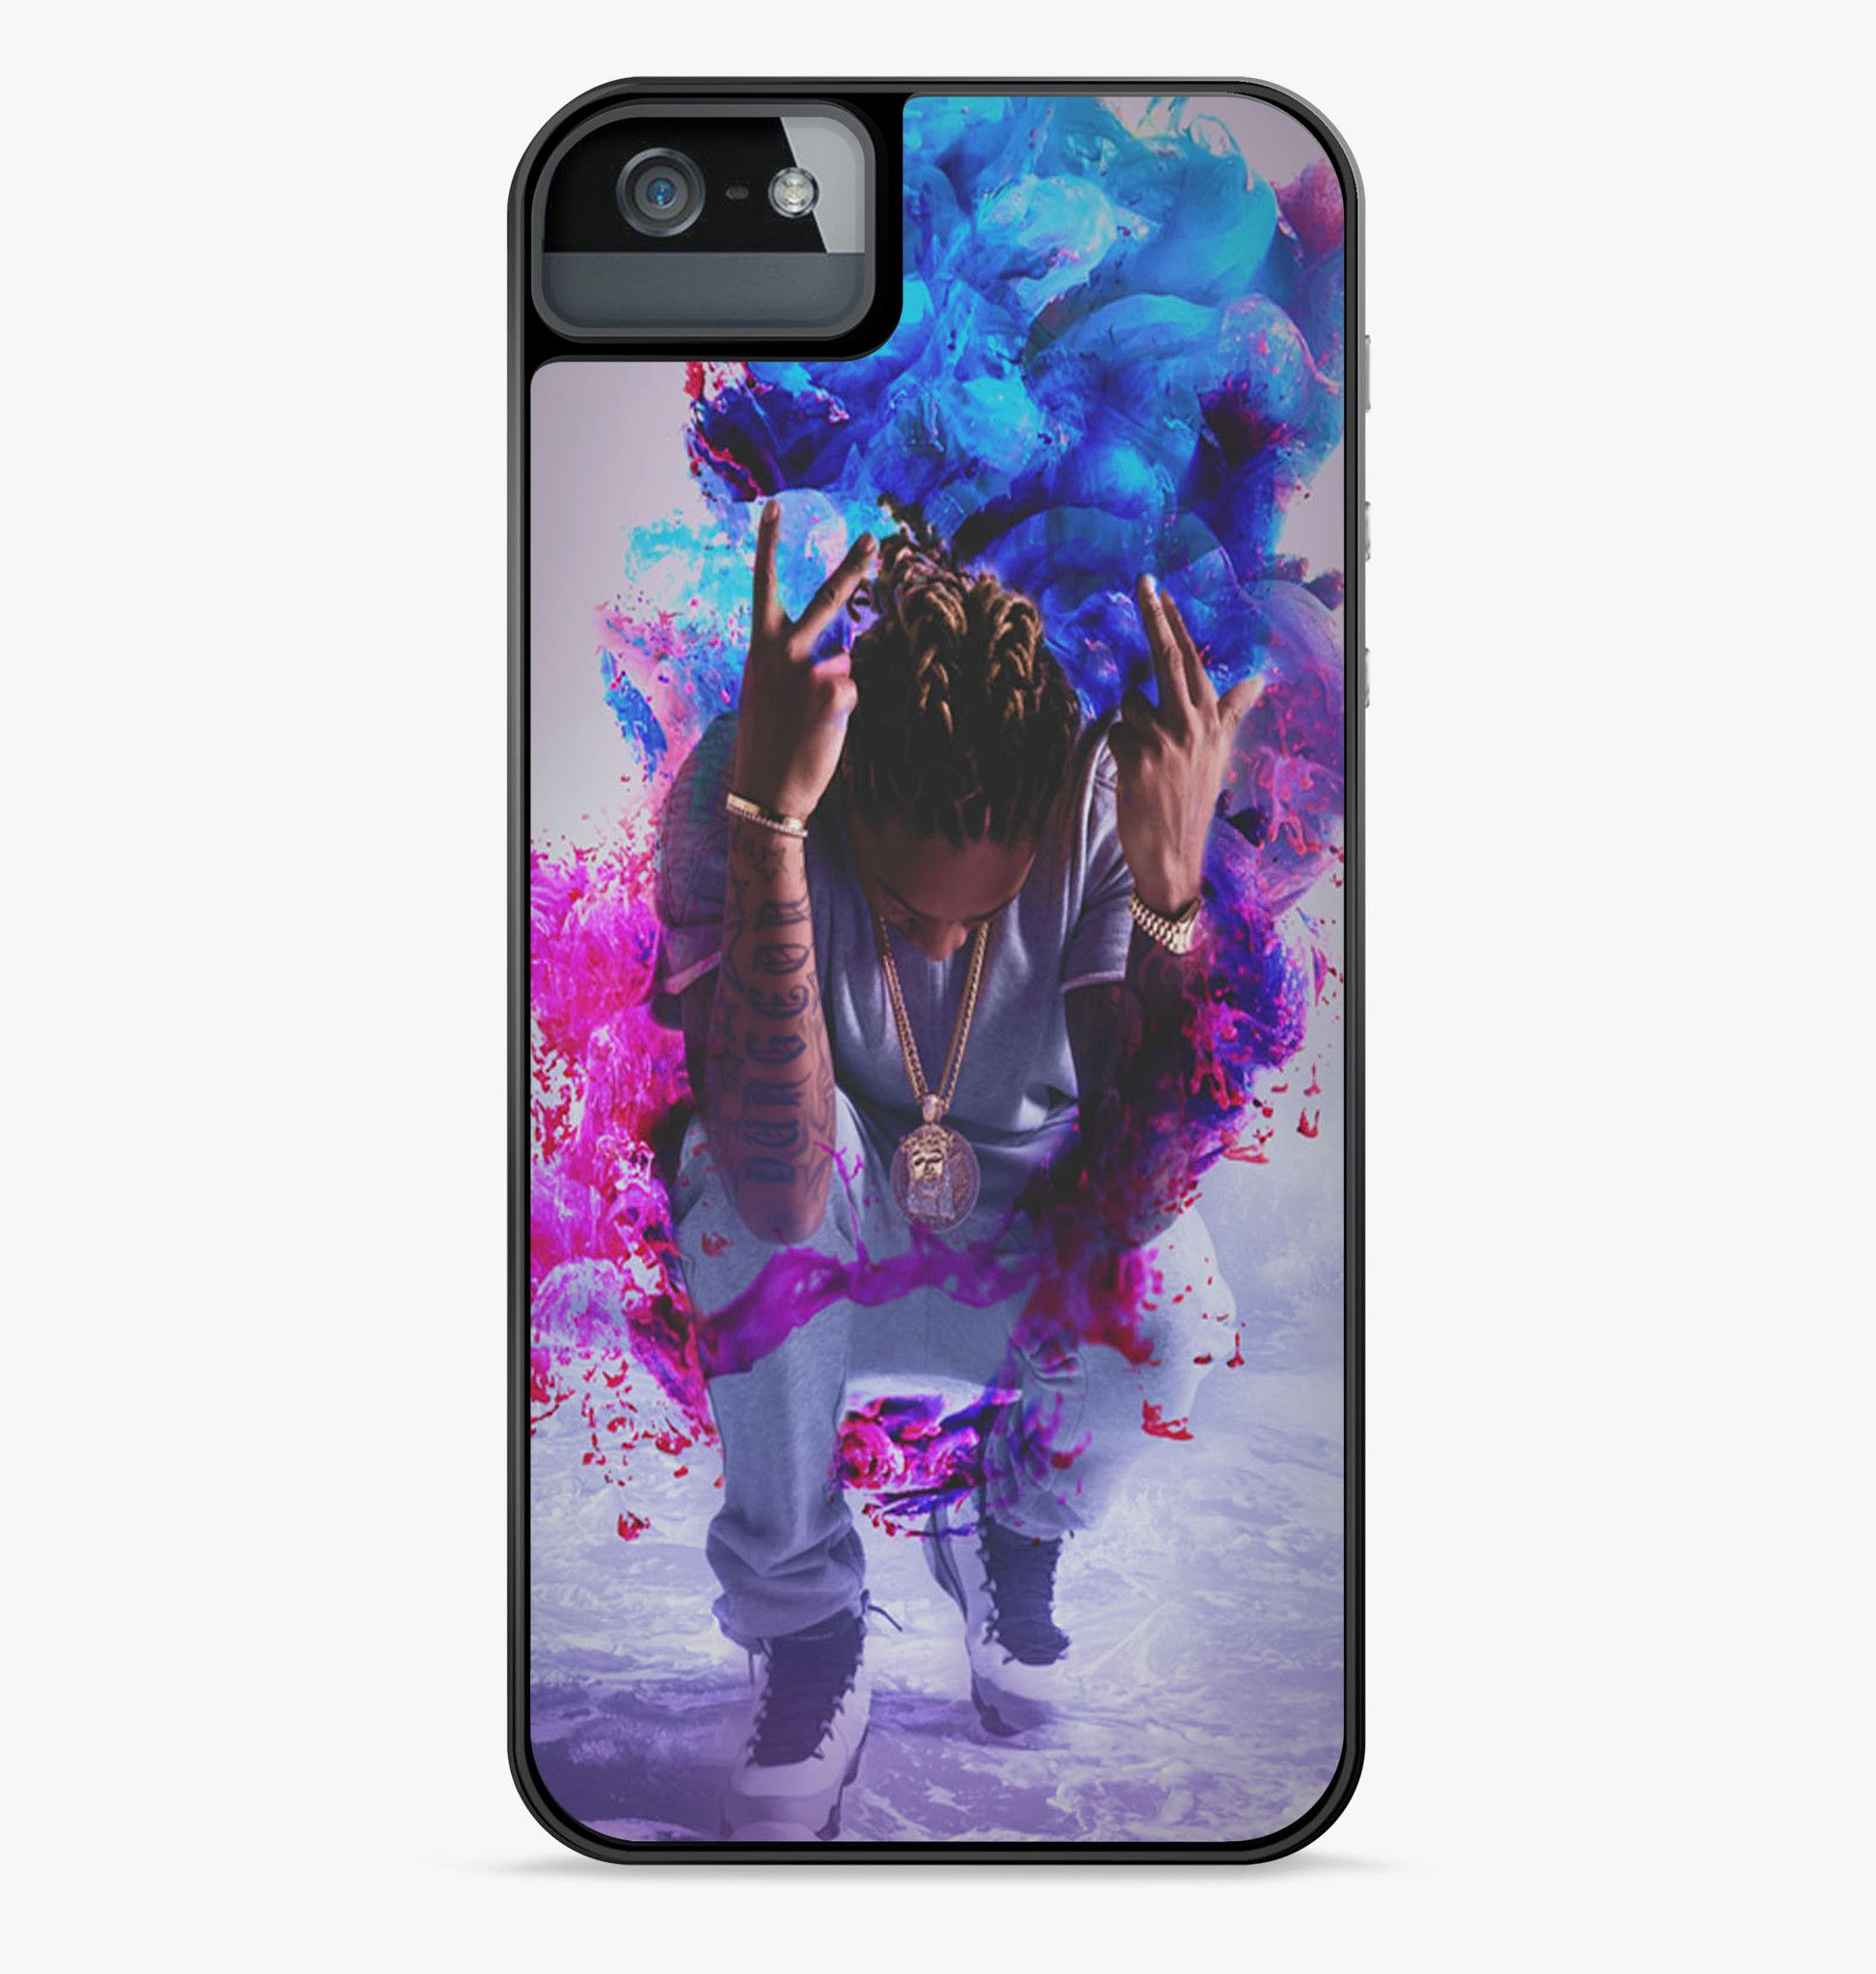 rappers iphone 6 case